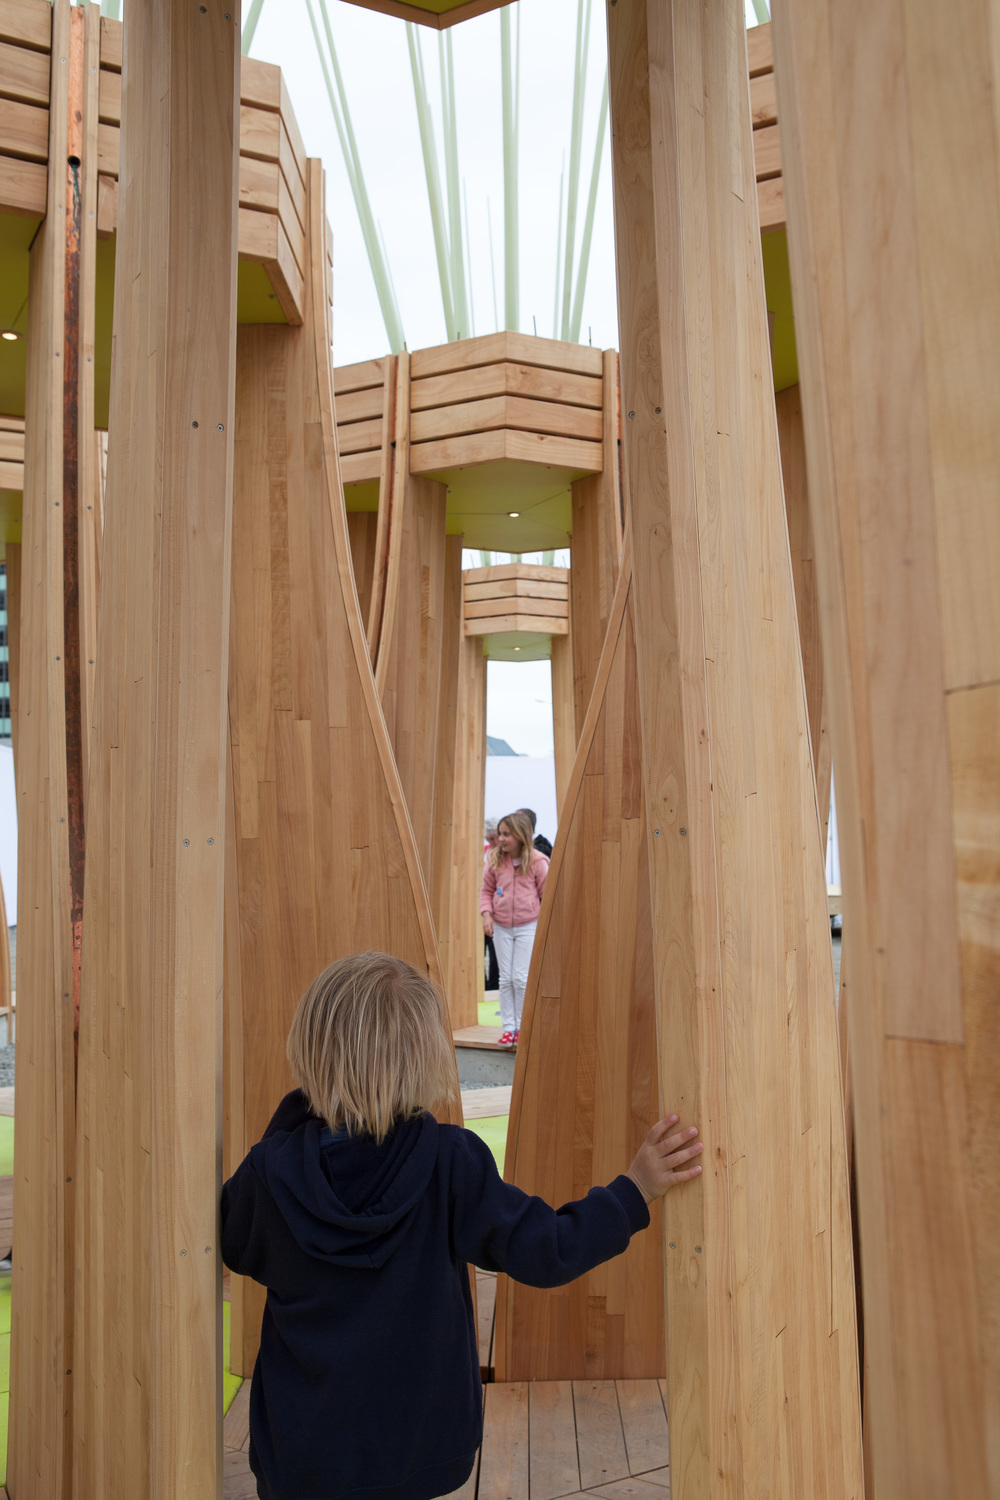 Julia_Morison_'Tree_Houses_For_Swamp_Dwellers'_2013_Photo_BridgitAnderson_CourtesyofSCAPEPublicArt7.jpg